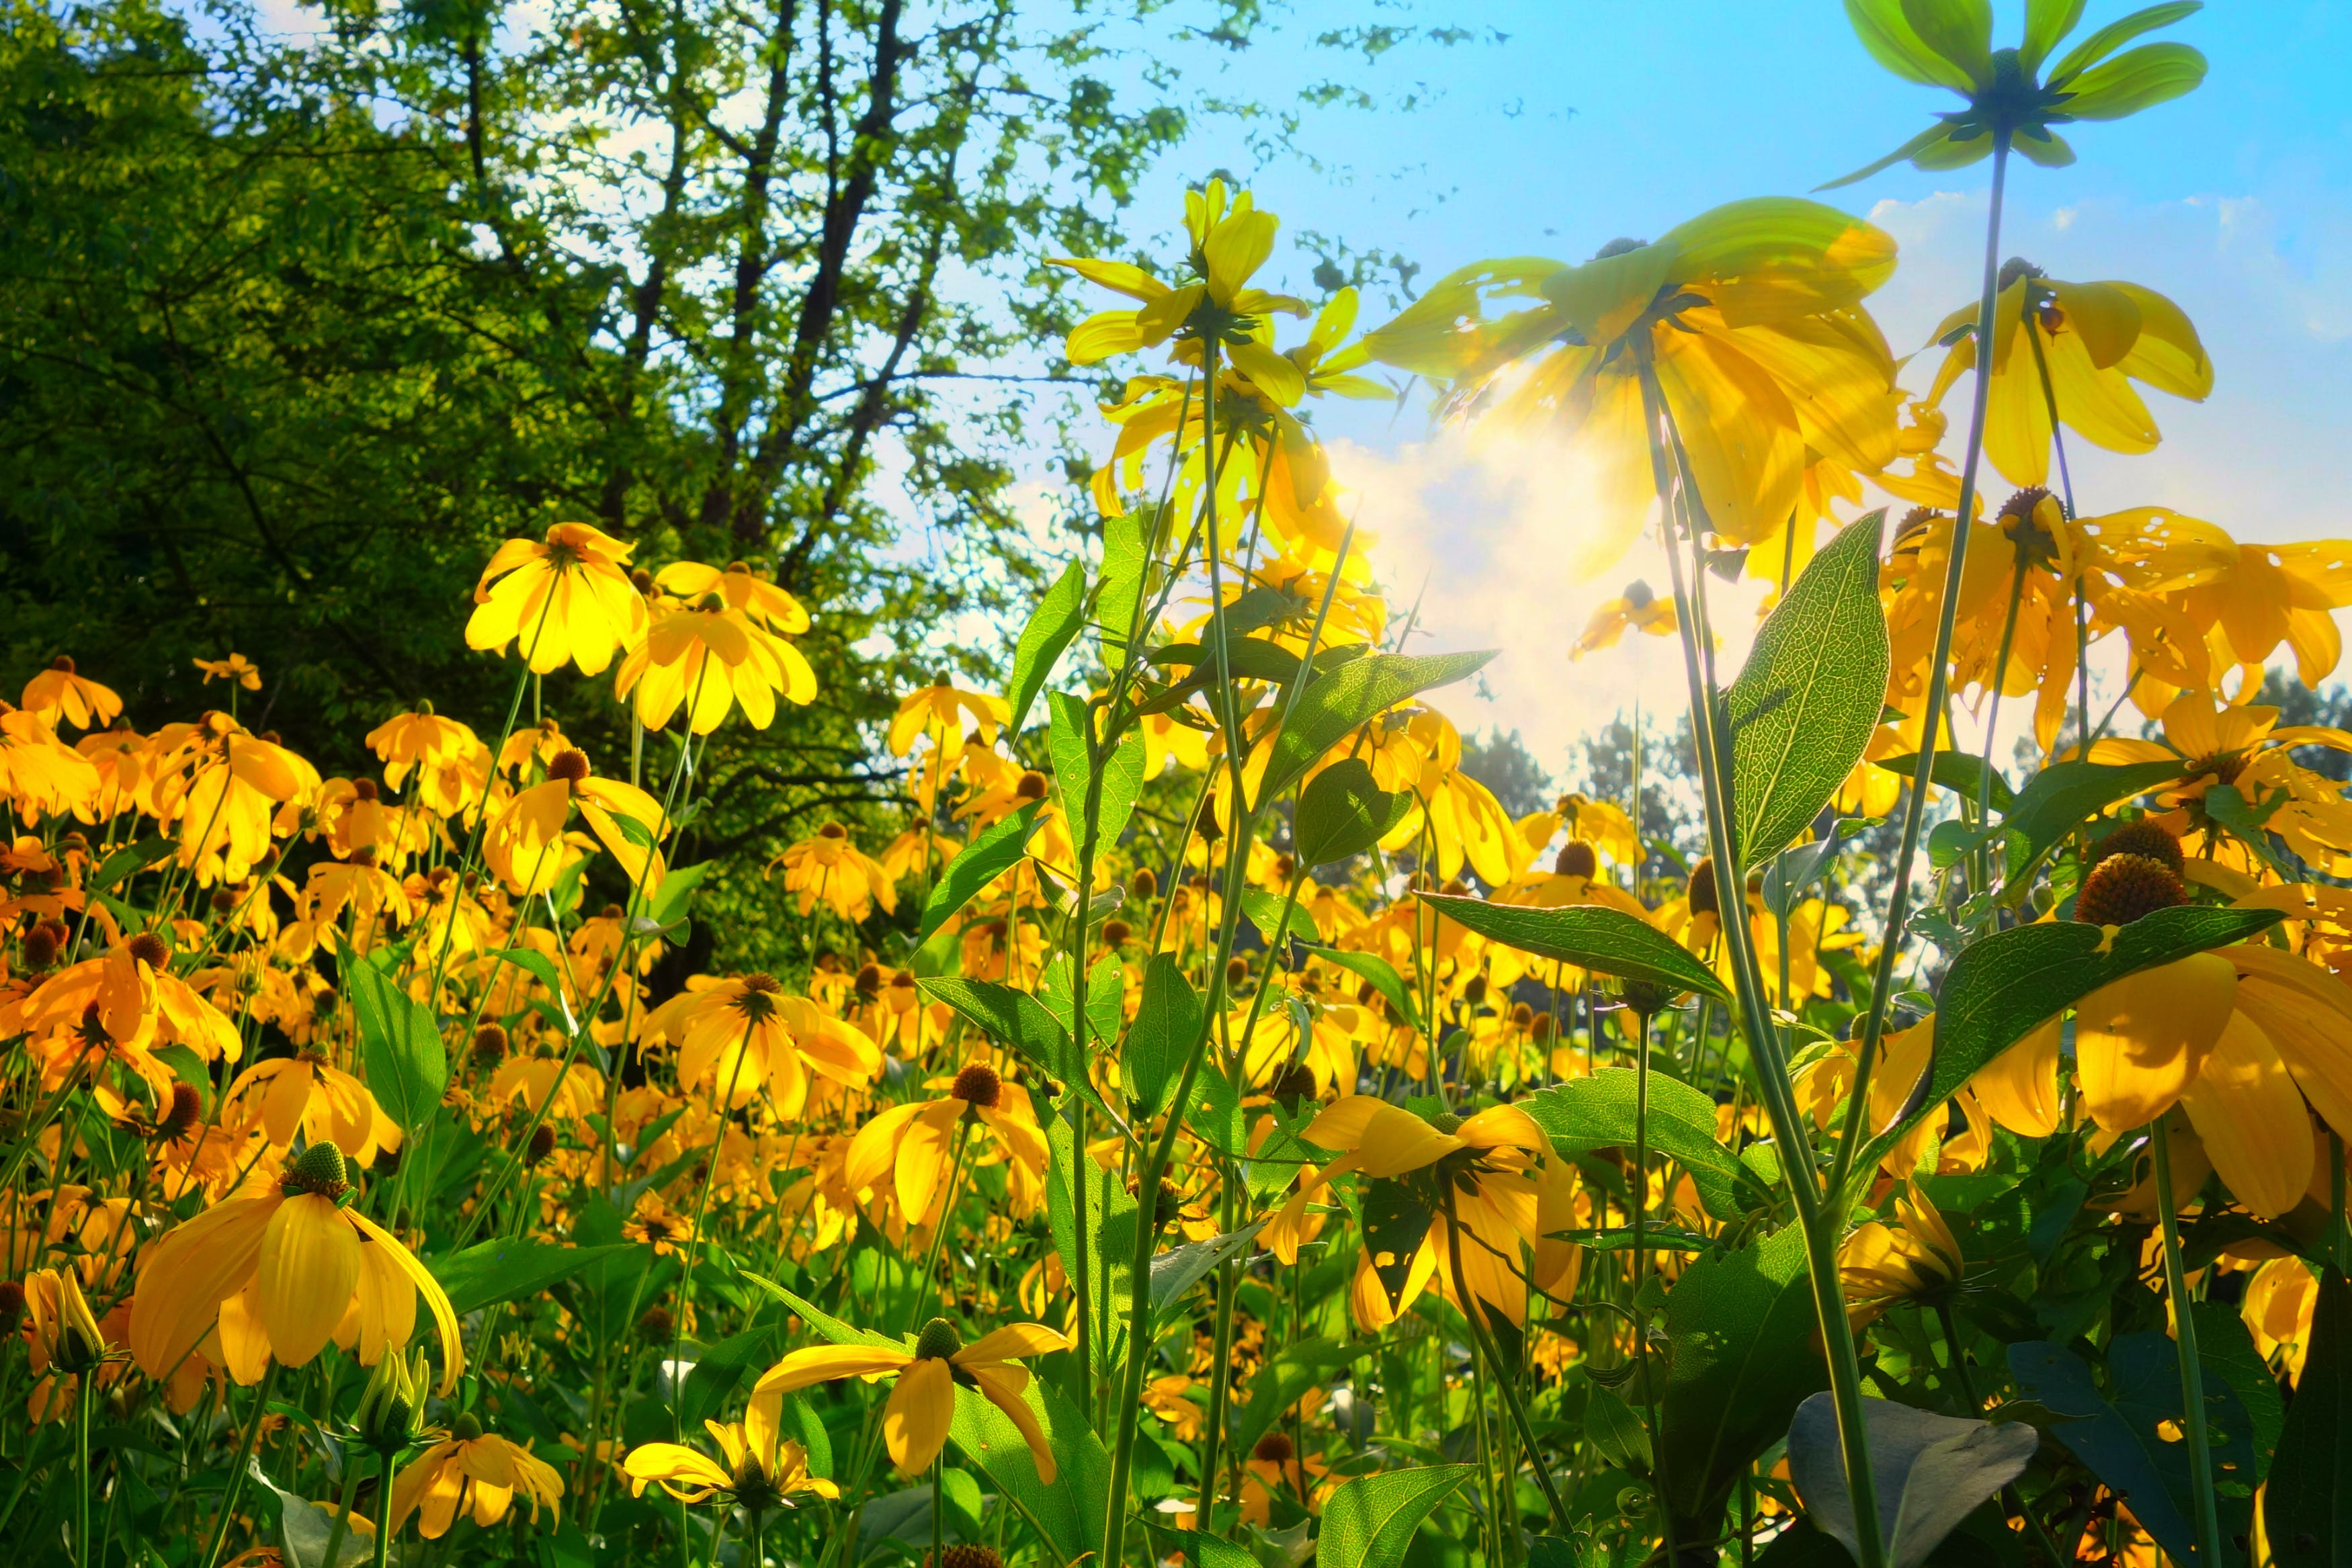 Yellow Petaled Flower Bloom during Daytime